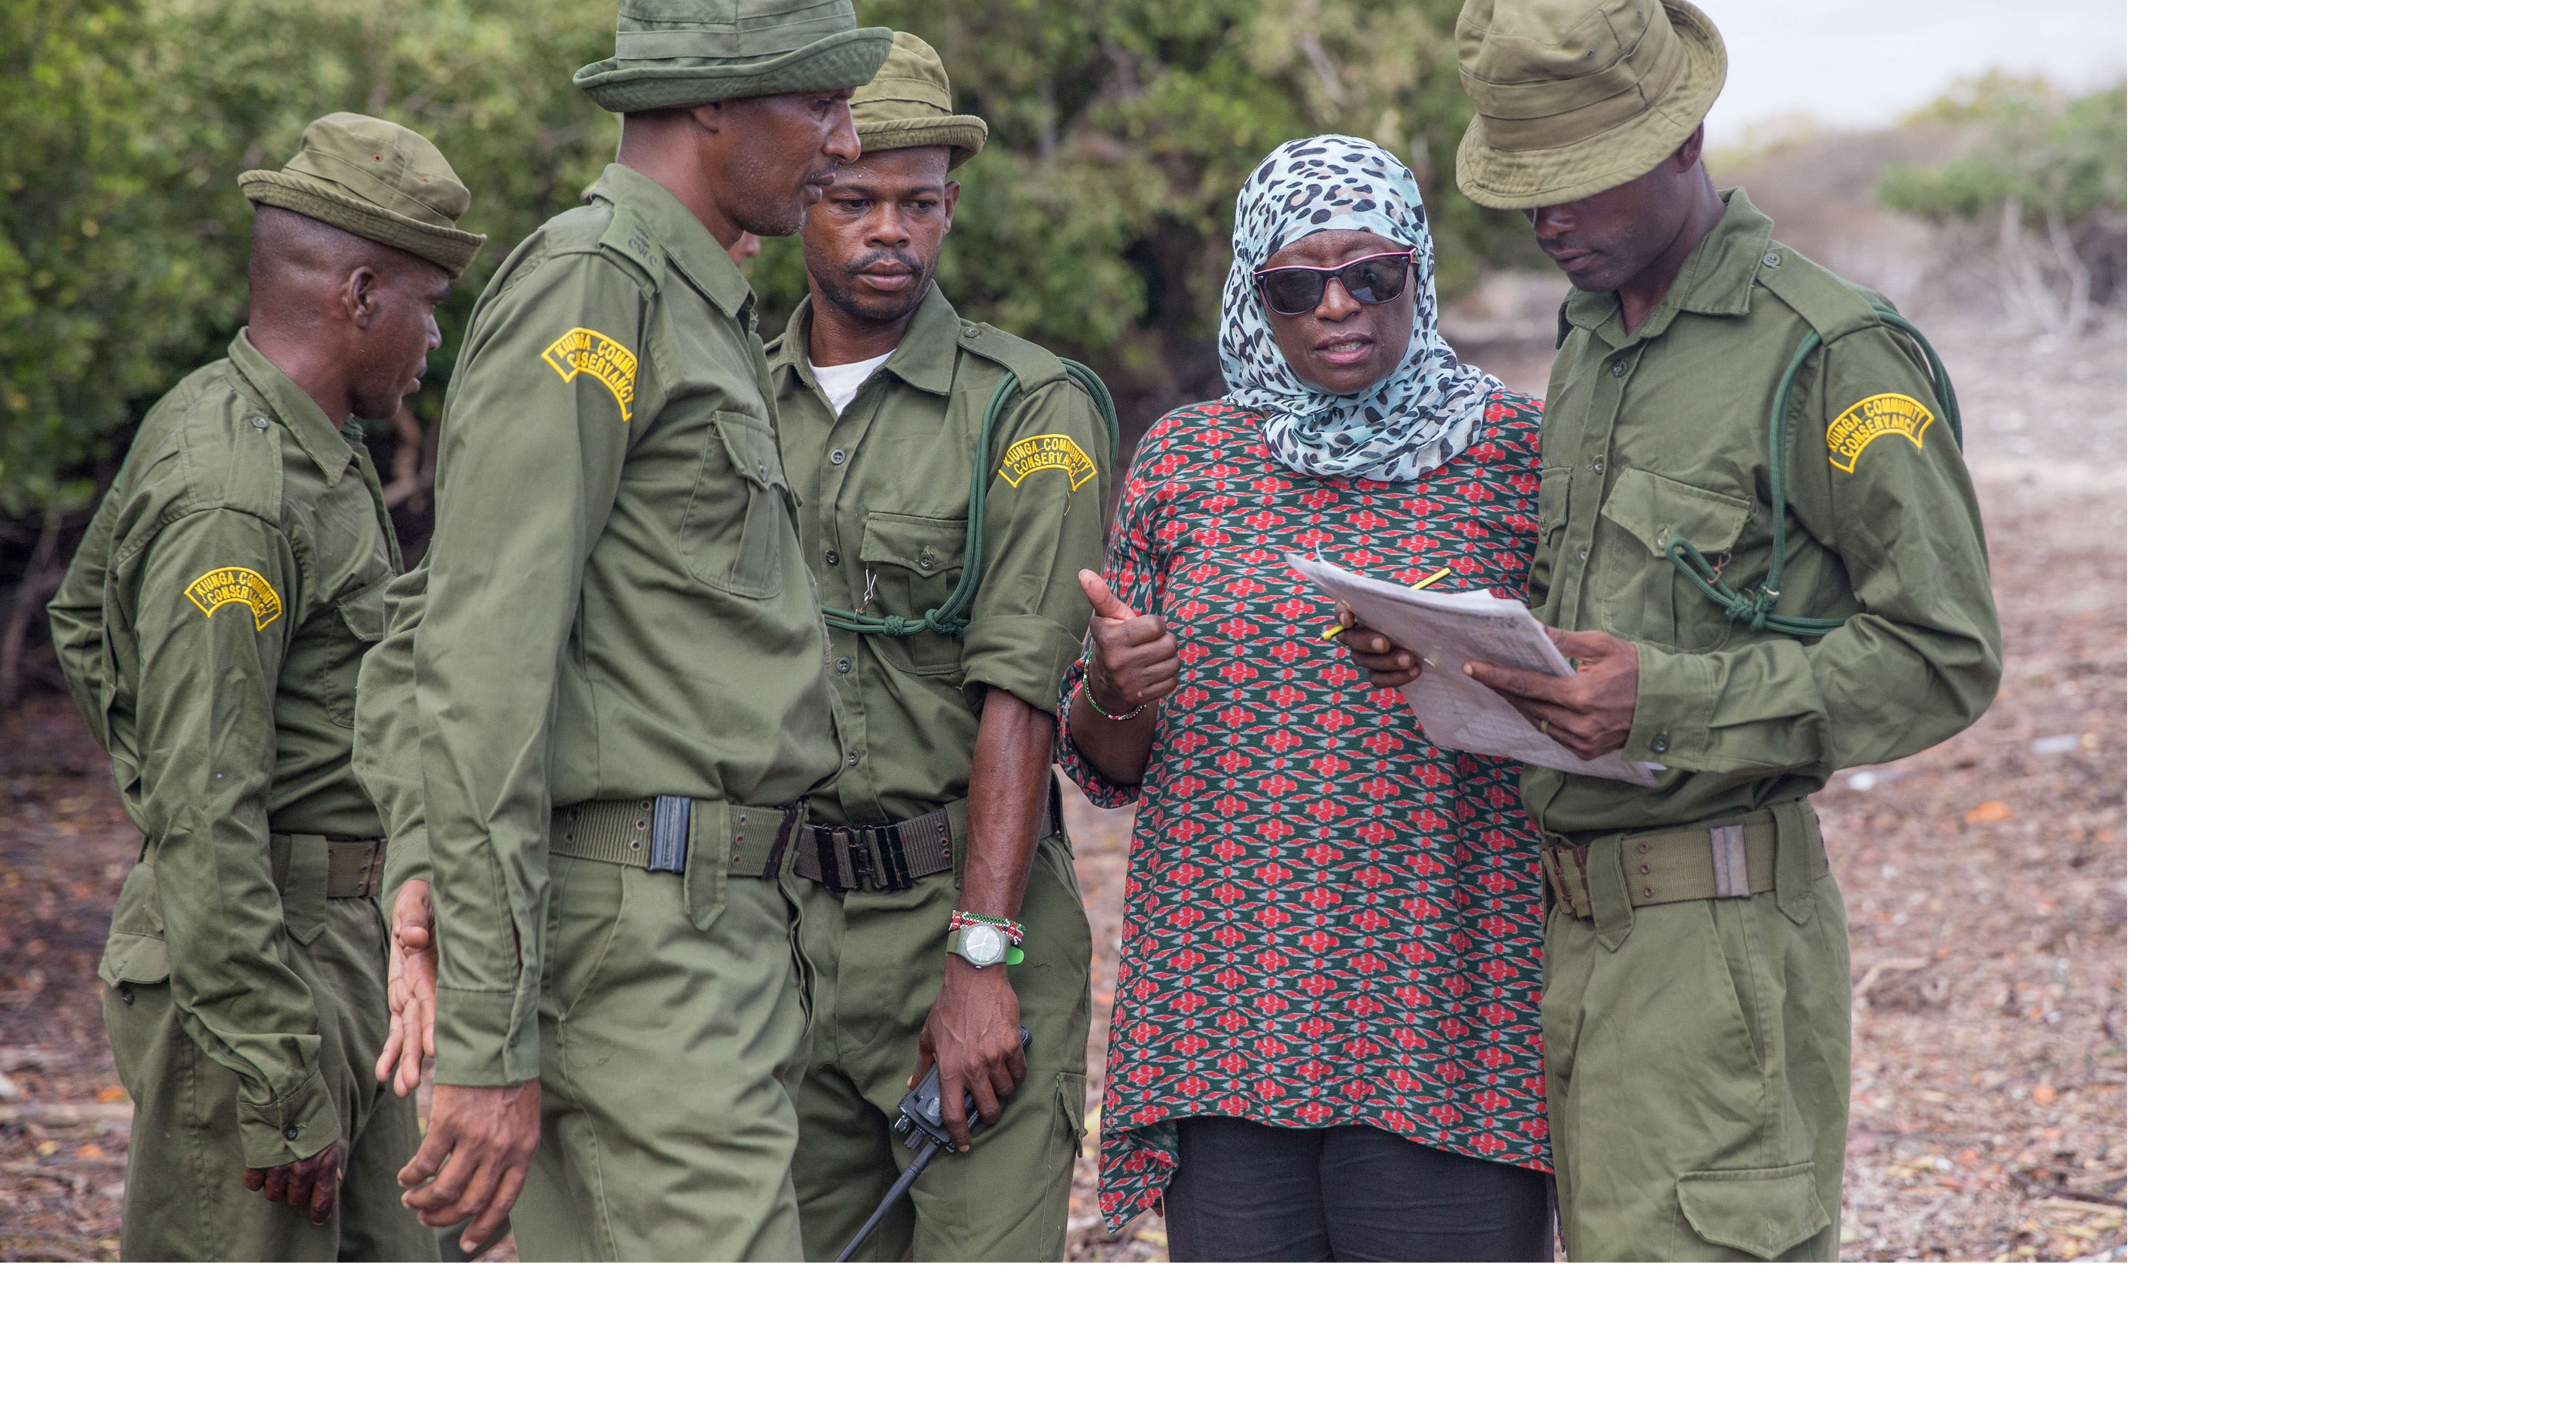 a woman talking to a group of men in military uniform.